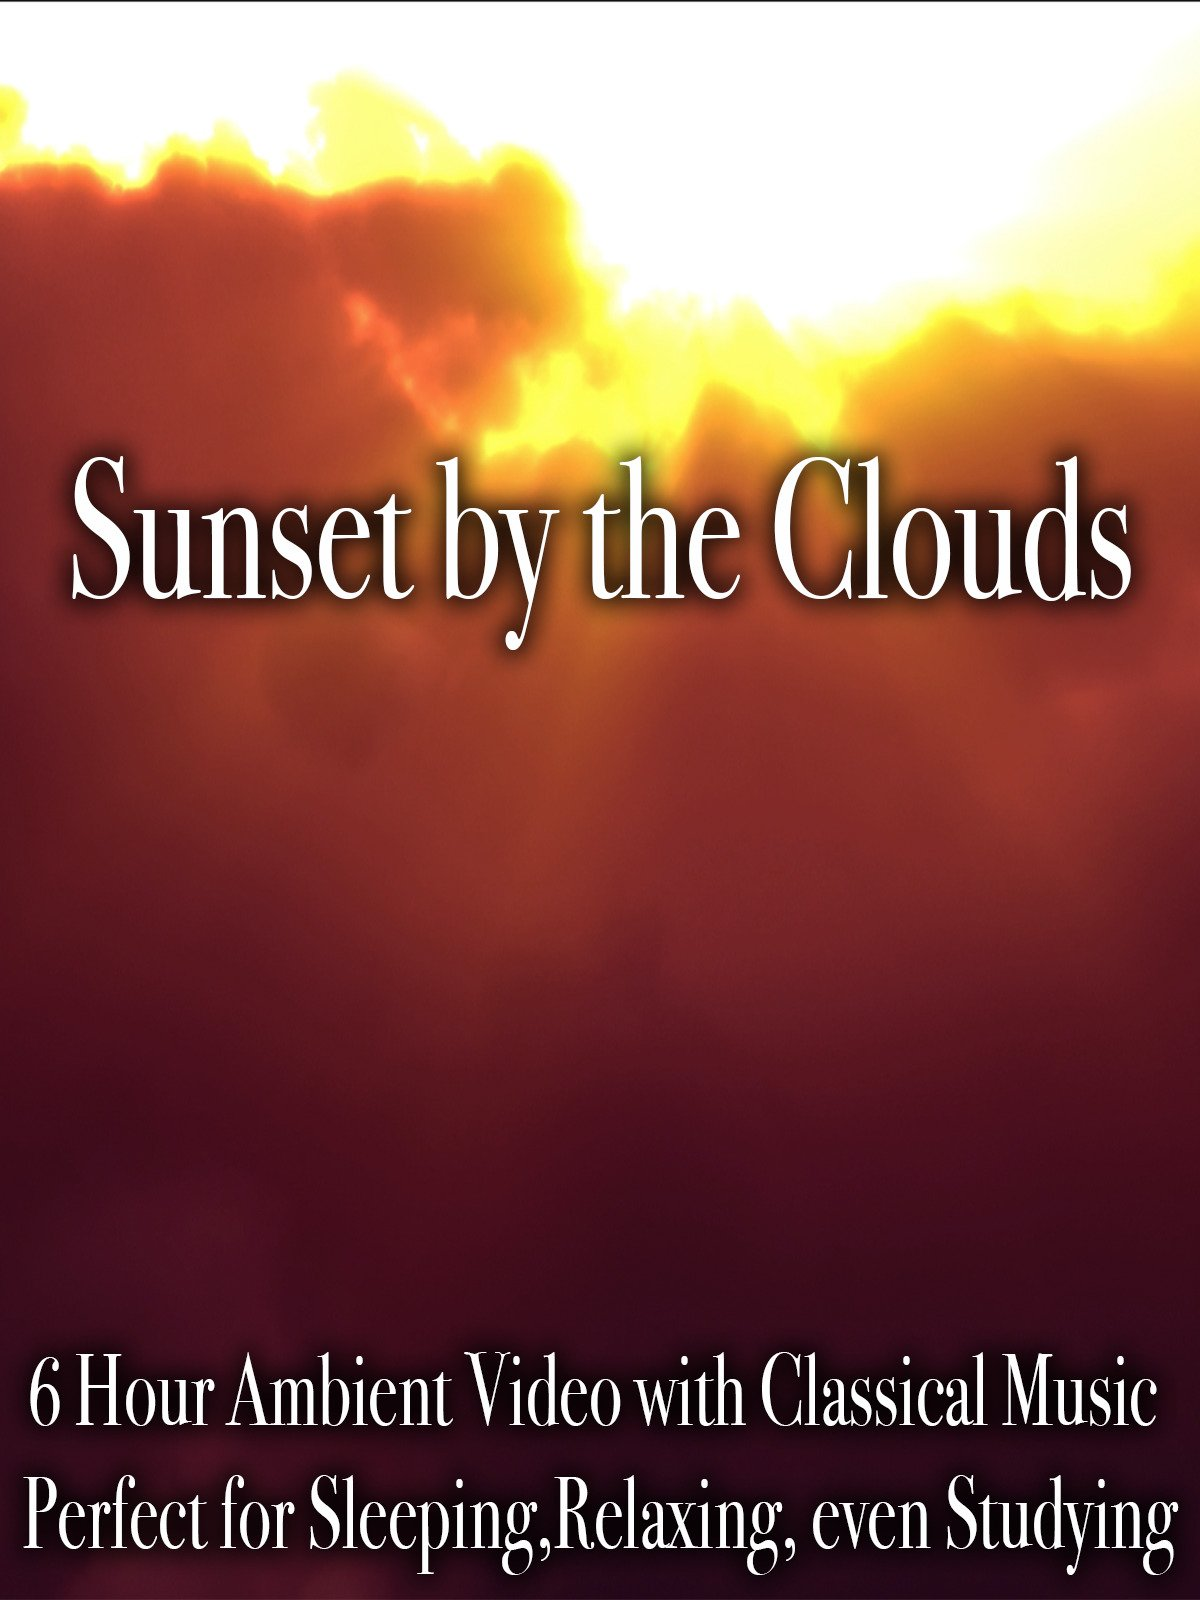 Sunset by the Clouds 6 Hour Ambient Video with Classical Music Perfect for Sleeping, Relaxing, even Studying on Amazon Prime Instant Video UK